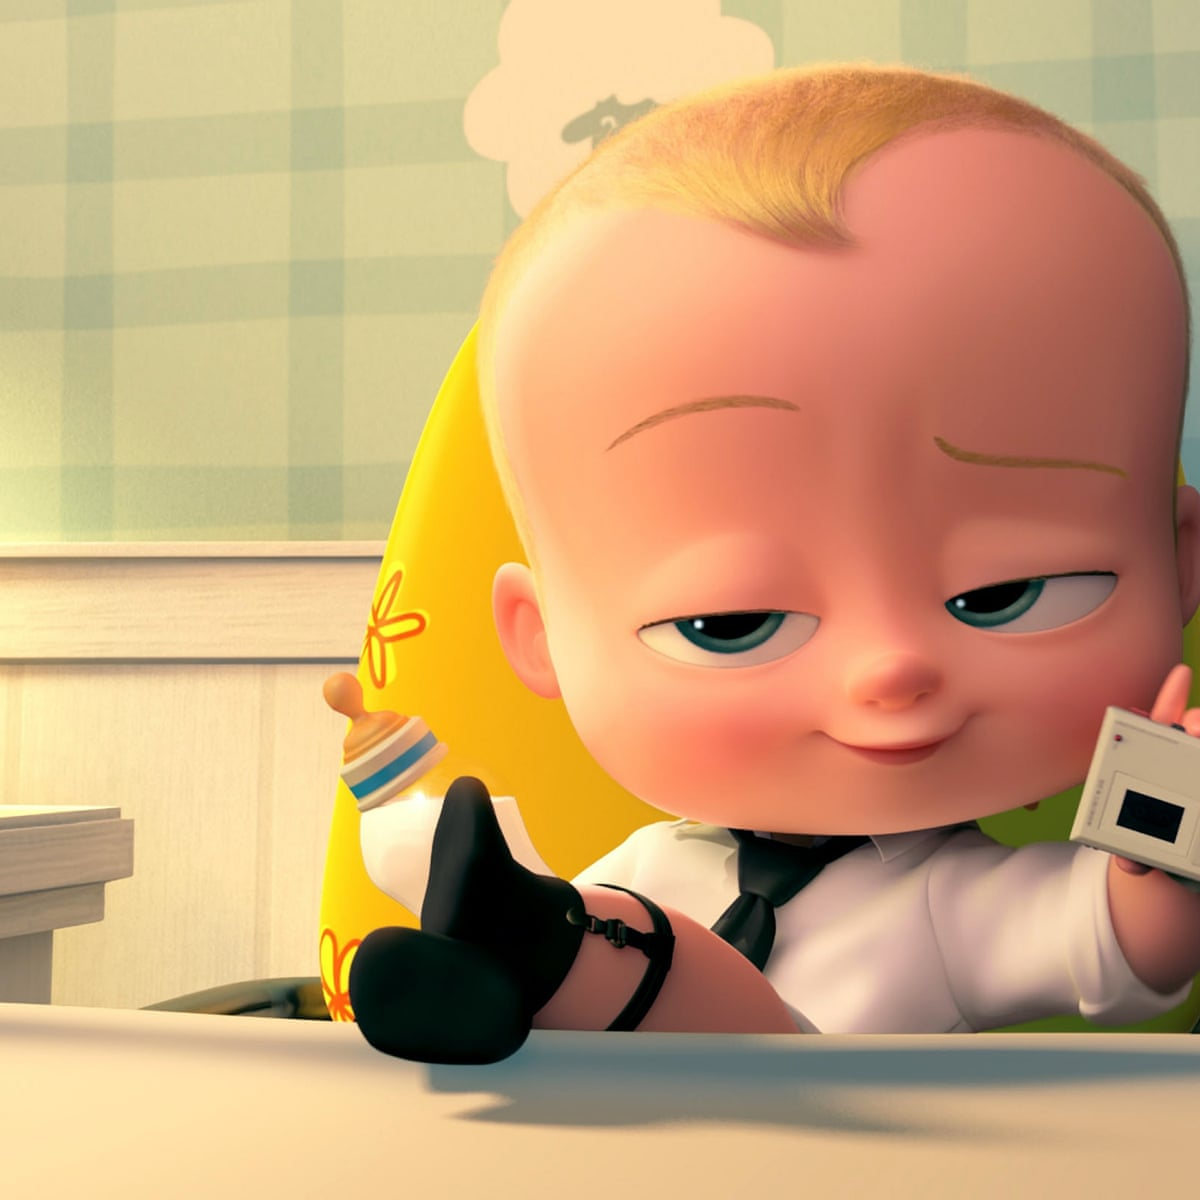 The Boss Baby Review Alec Baldwin Sweetens The Deal In Amusing Animation The Boss Baby The Guardian